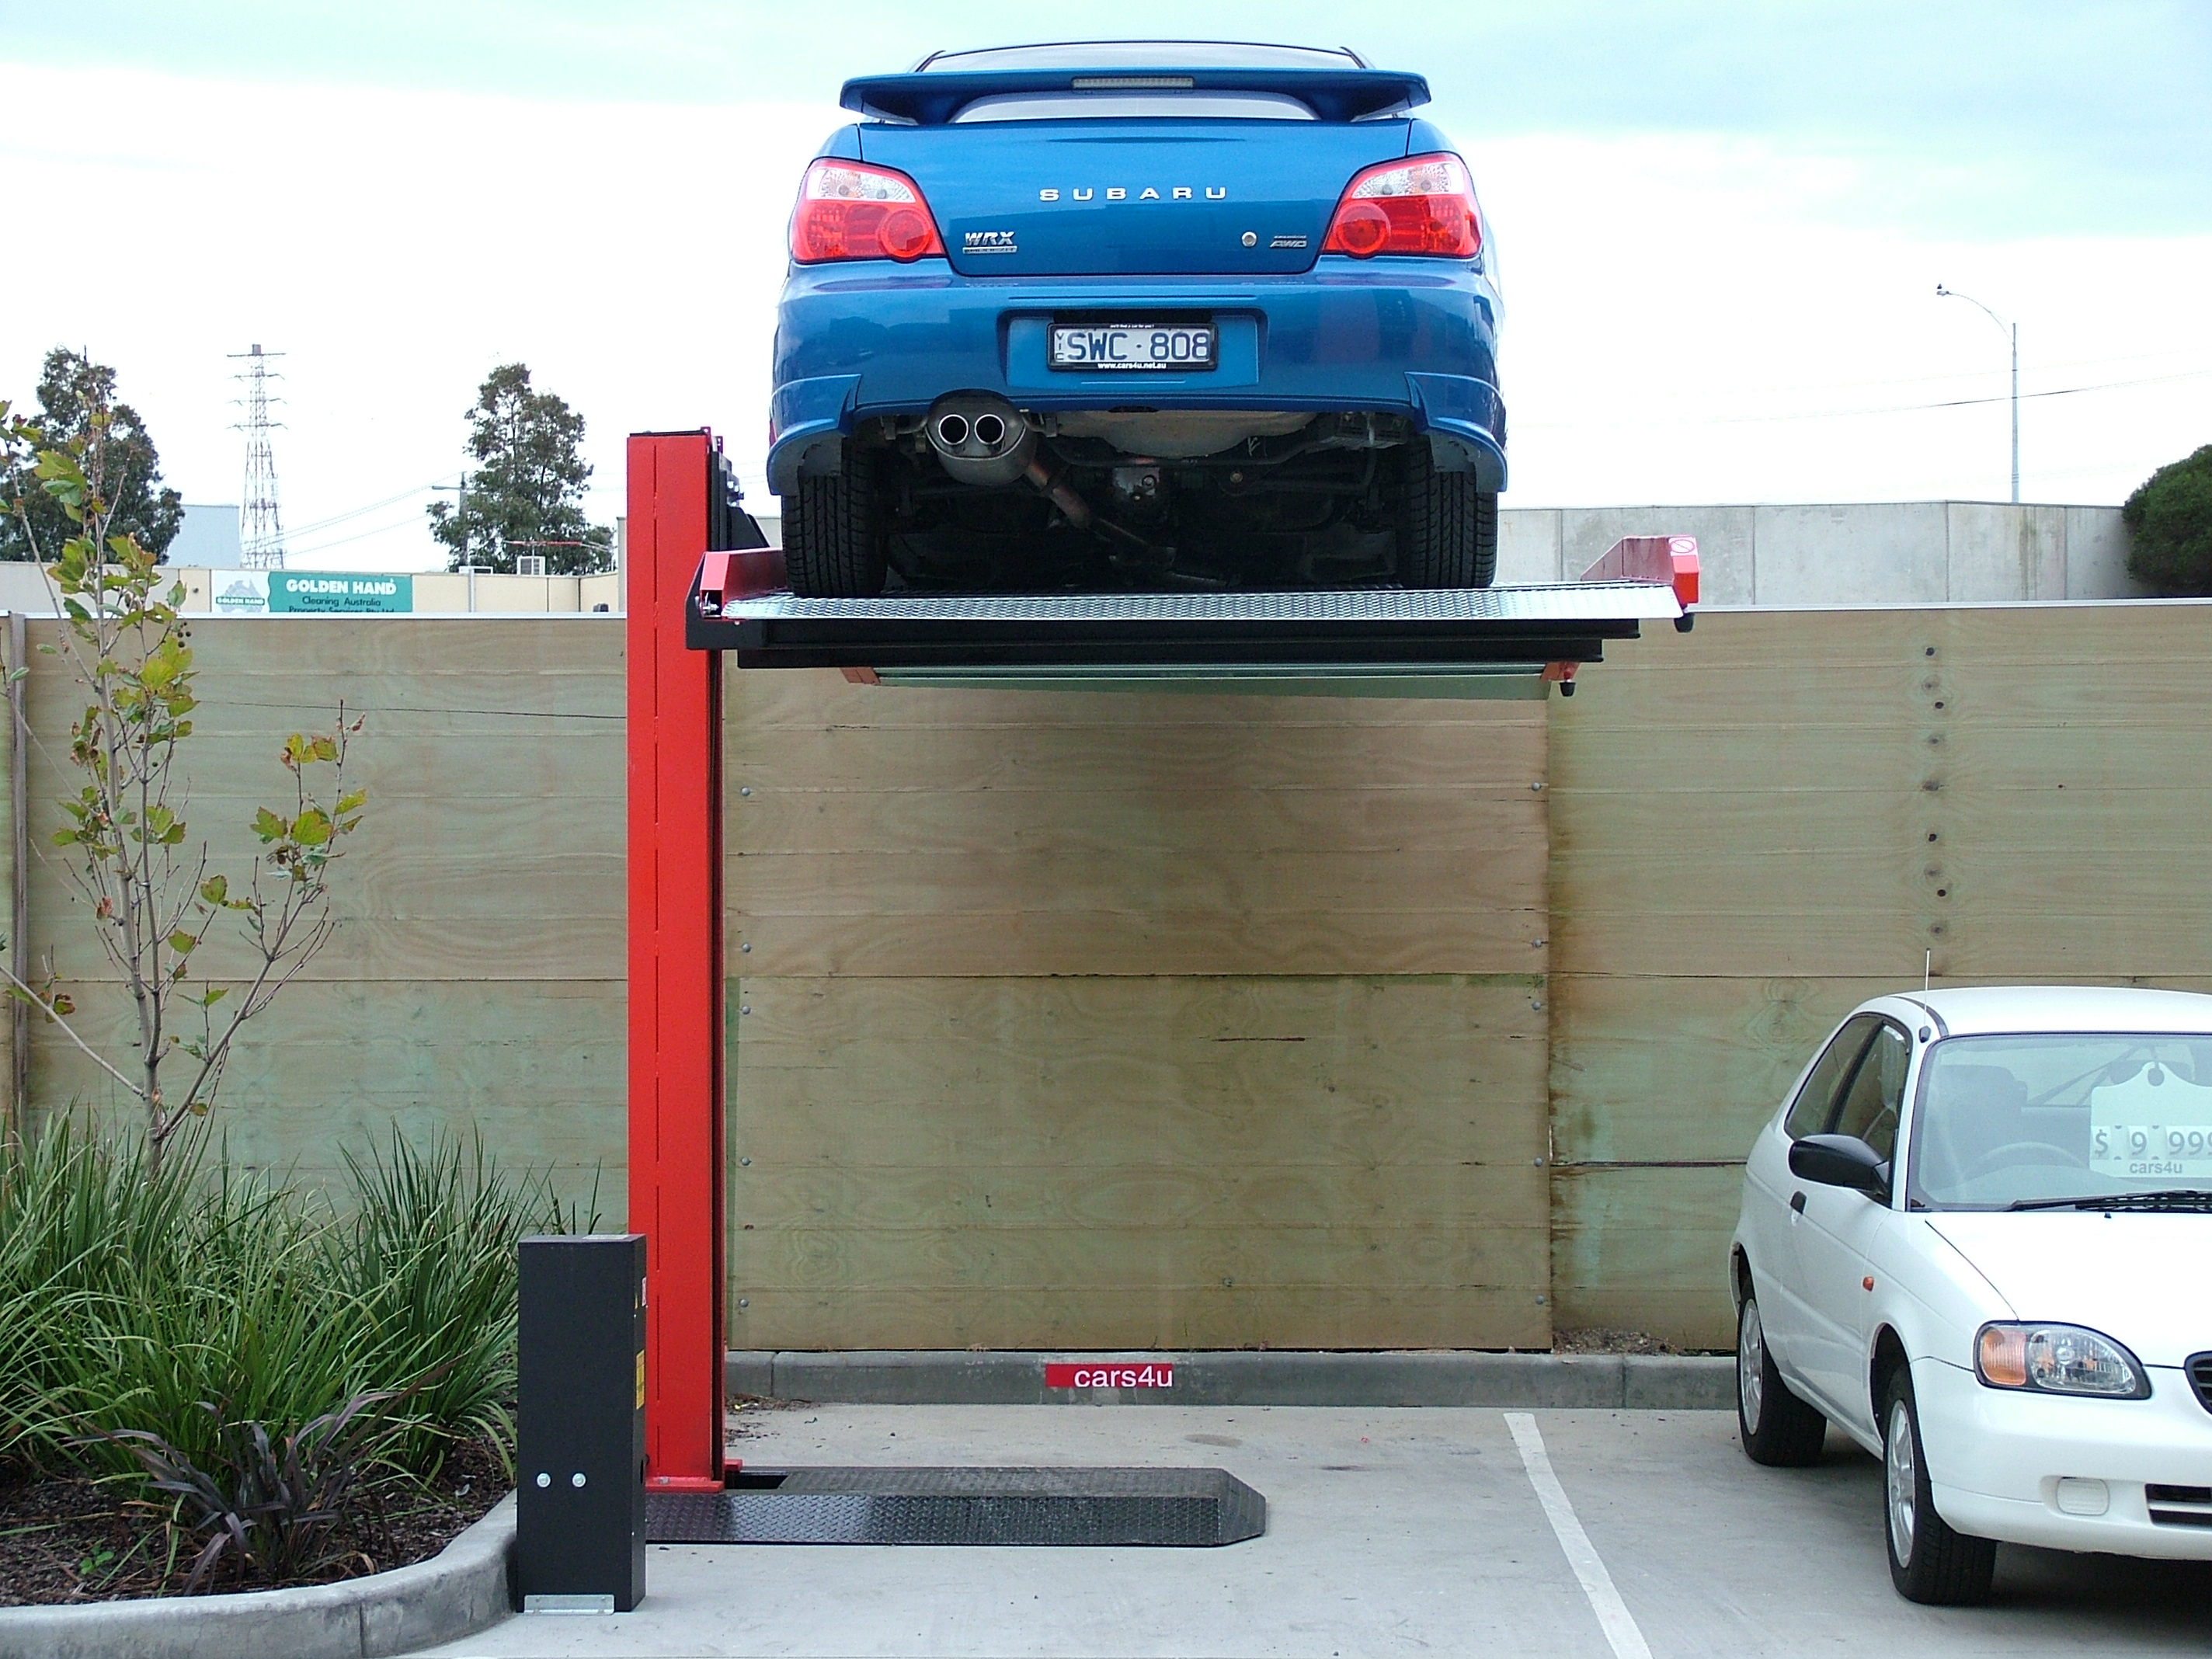 equipment blog lift car raised ase shop post auto tuxedo lifts xlt wayne deals bendpak system garage